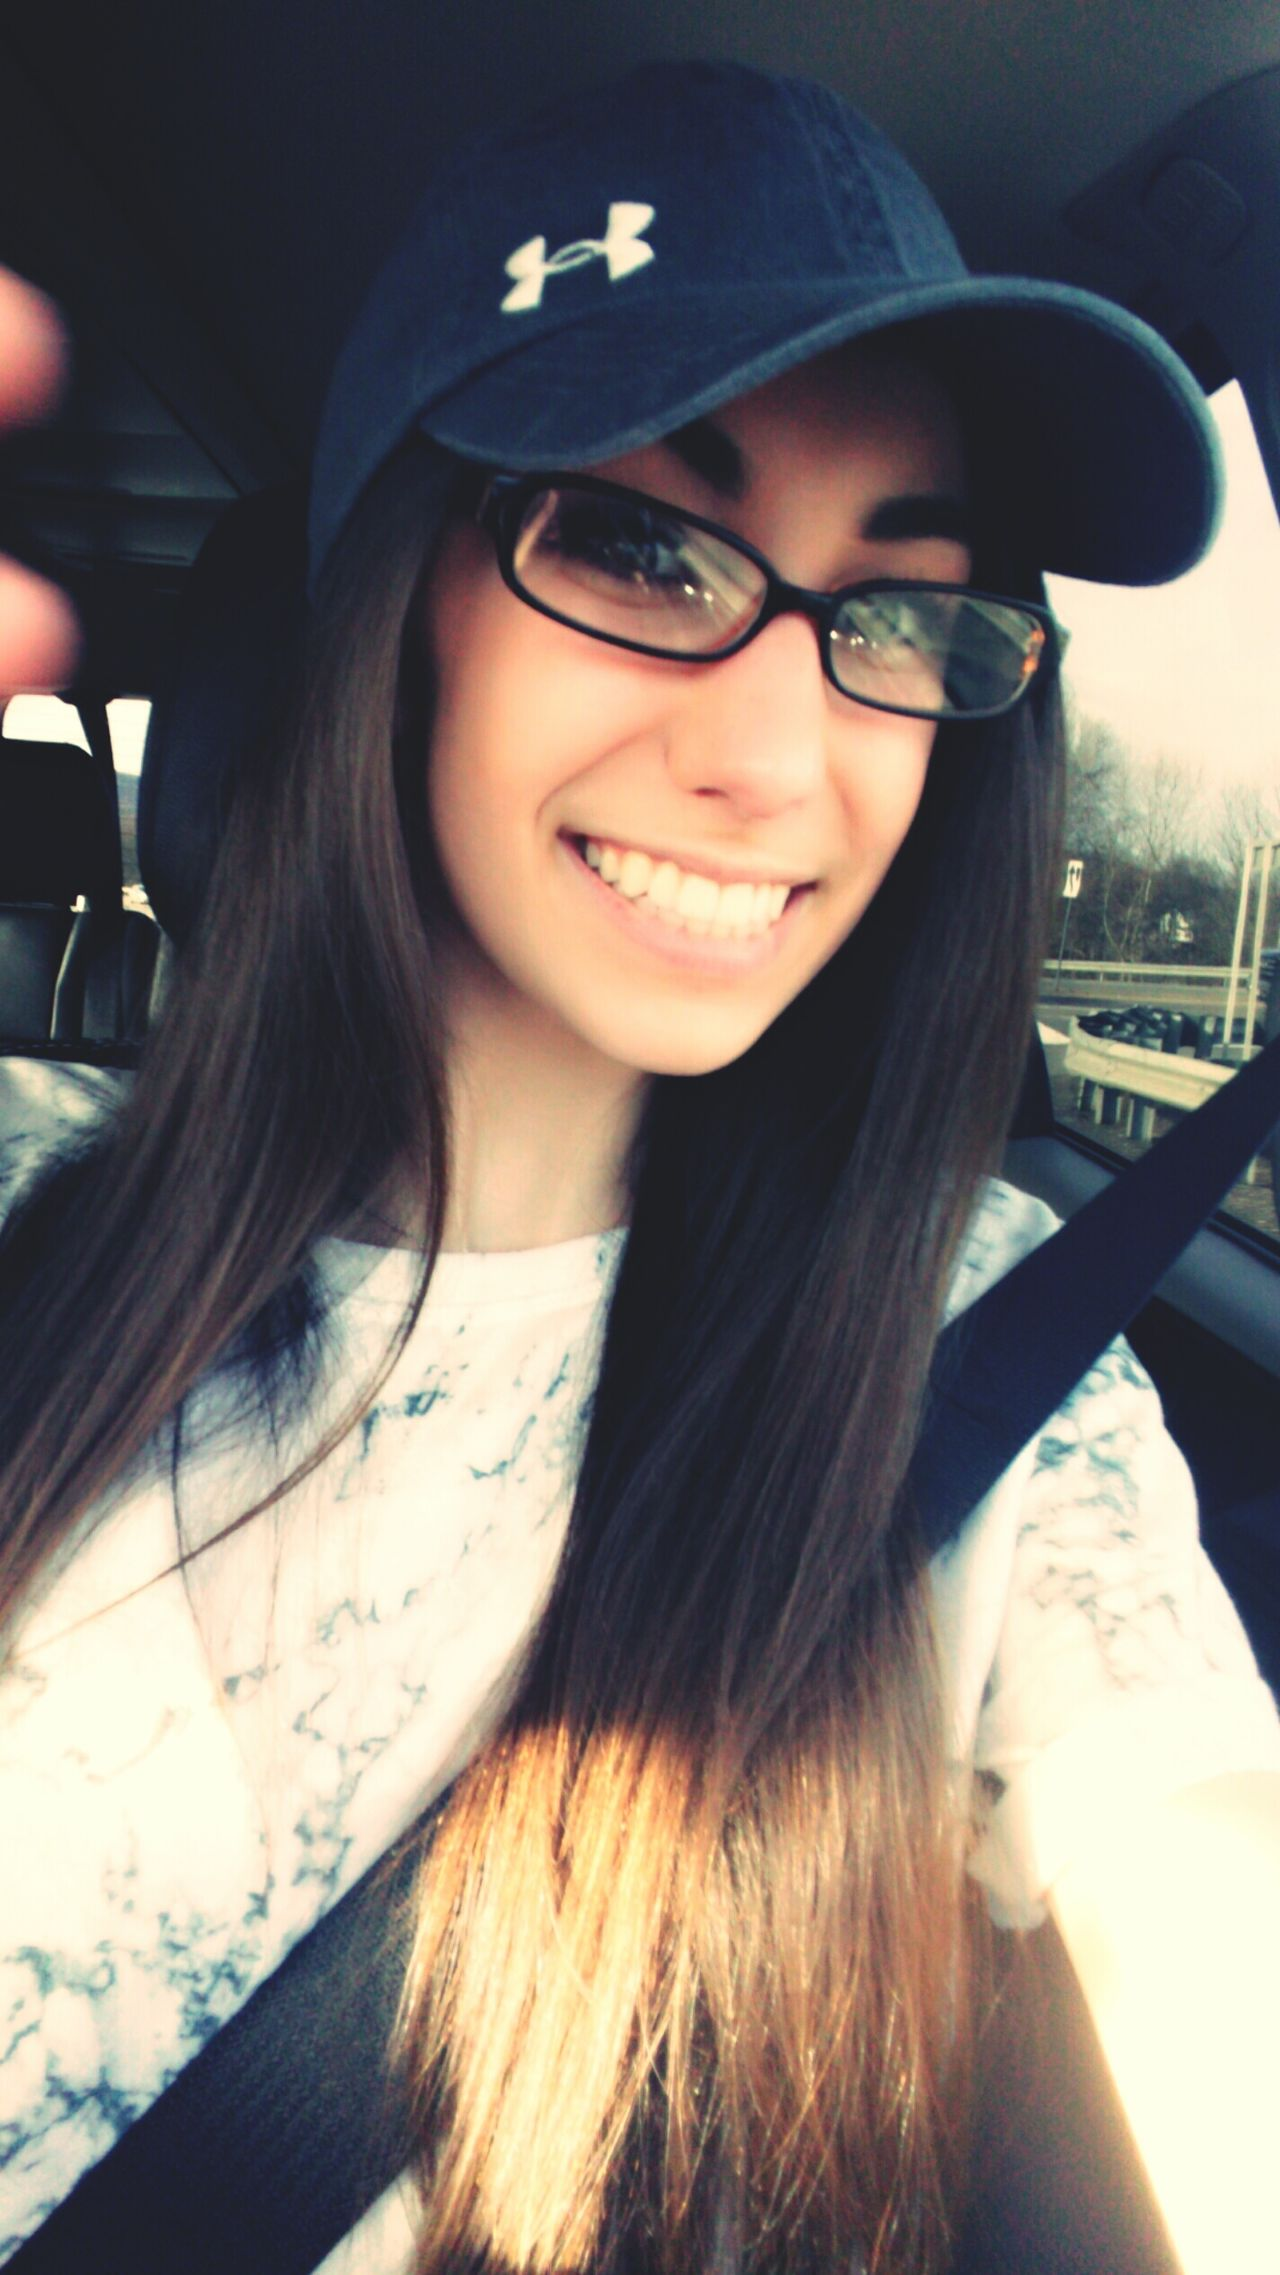 """She tried to photo bomb me lol """"why cant you just drive?!"""" Driving Smiles Long Hair Snapchat Selfienation Beautiful Happiness Lovely FaceShot Baseball Hat Baseballcap Foureyes"""